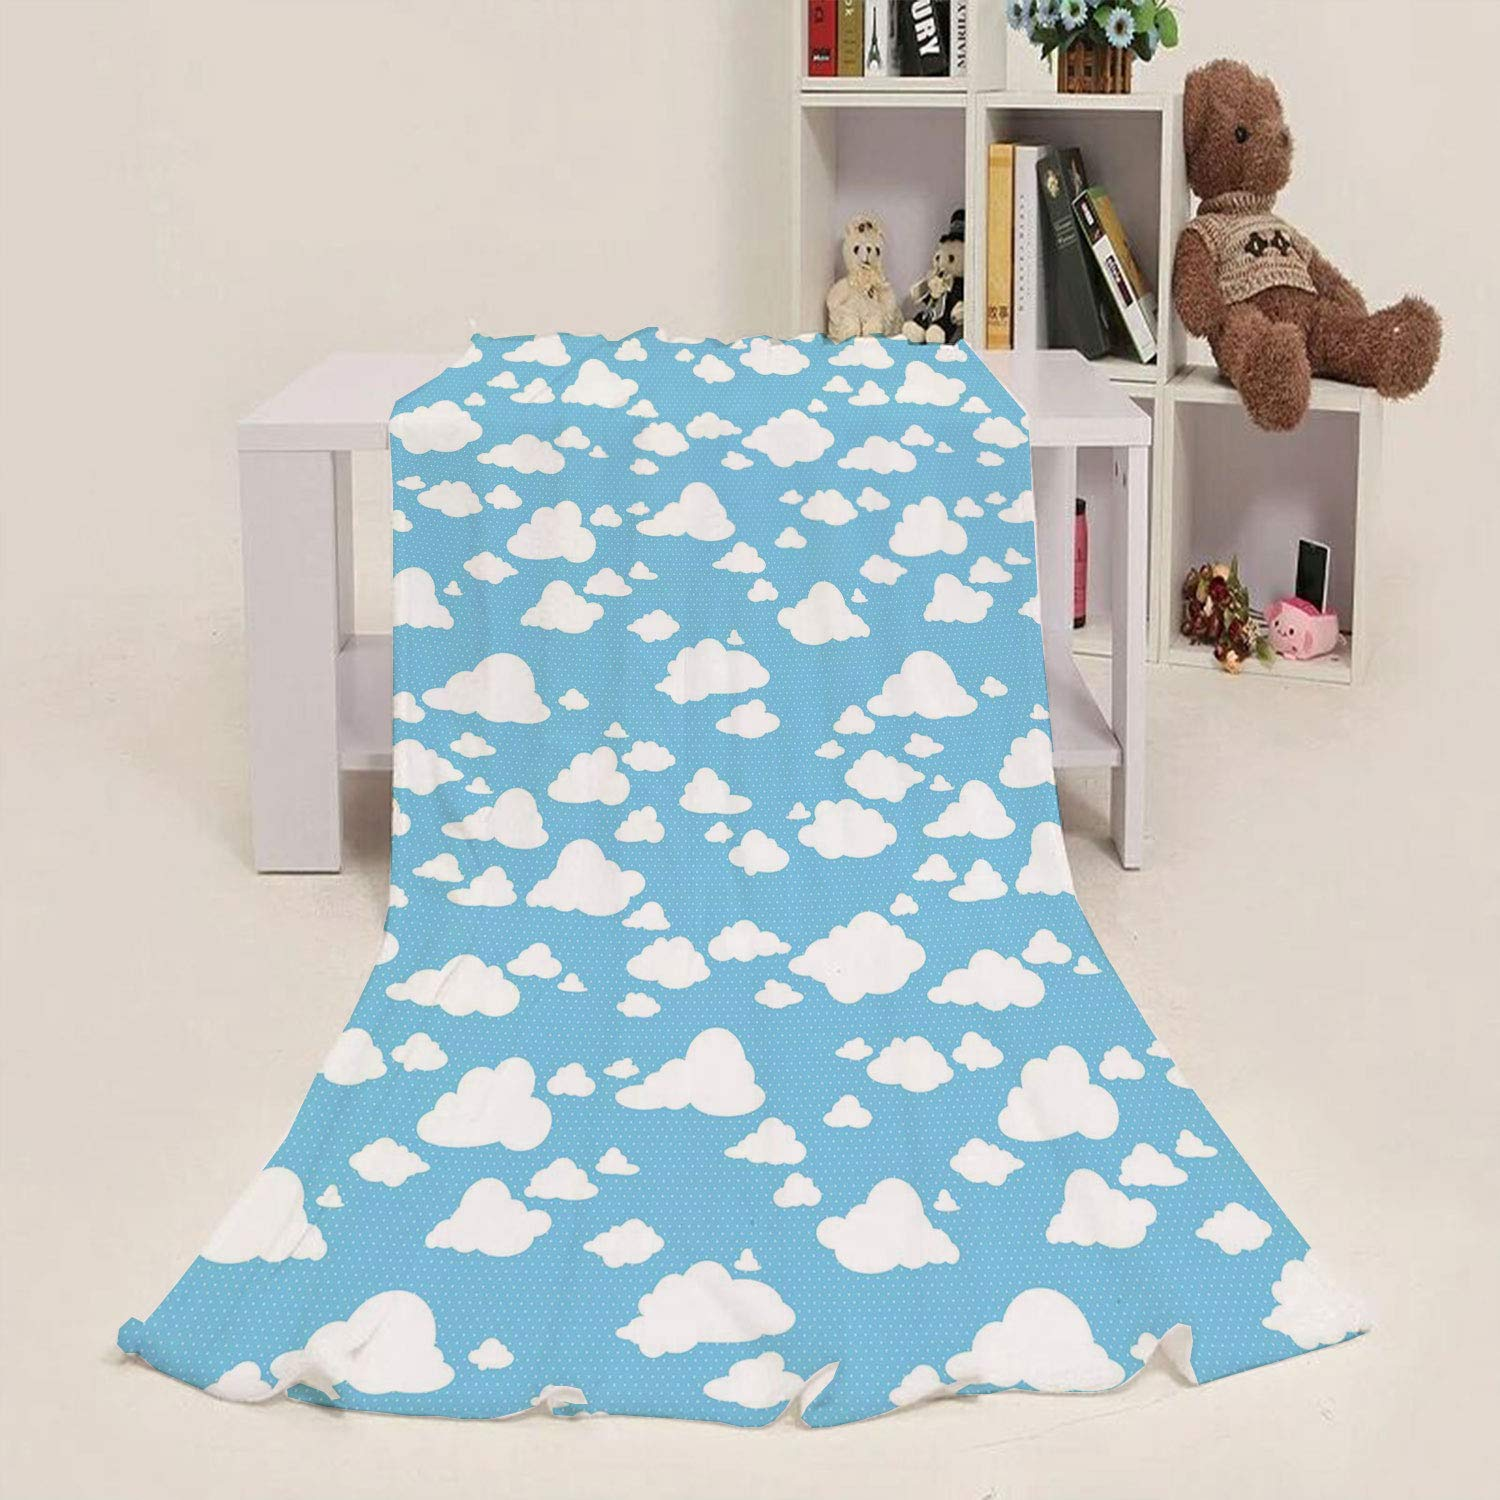 Throw Blanket Blue,Clear Summer Sky Pattern with Clouds Dotted Background Cartoon Style Kids Design,Sky Blue White 60''x 63'' Blanket for Baby Children Teens